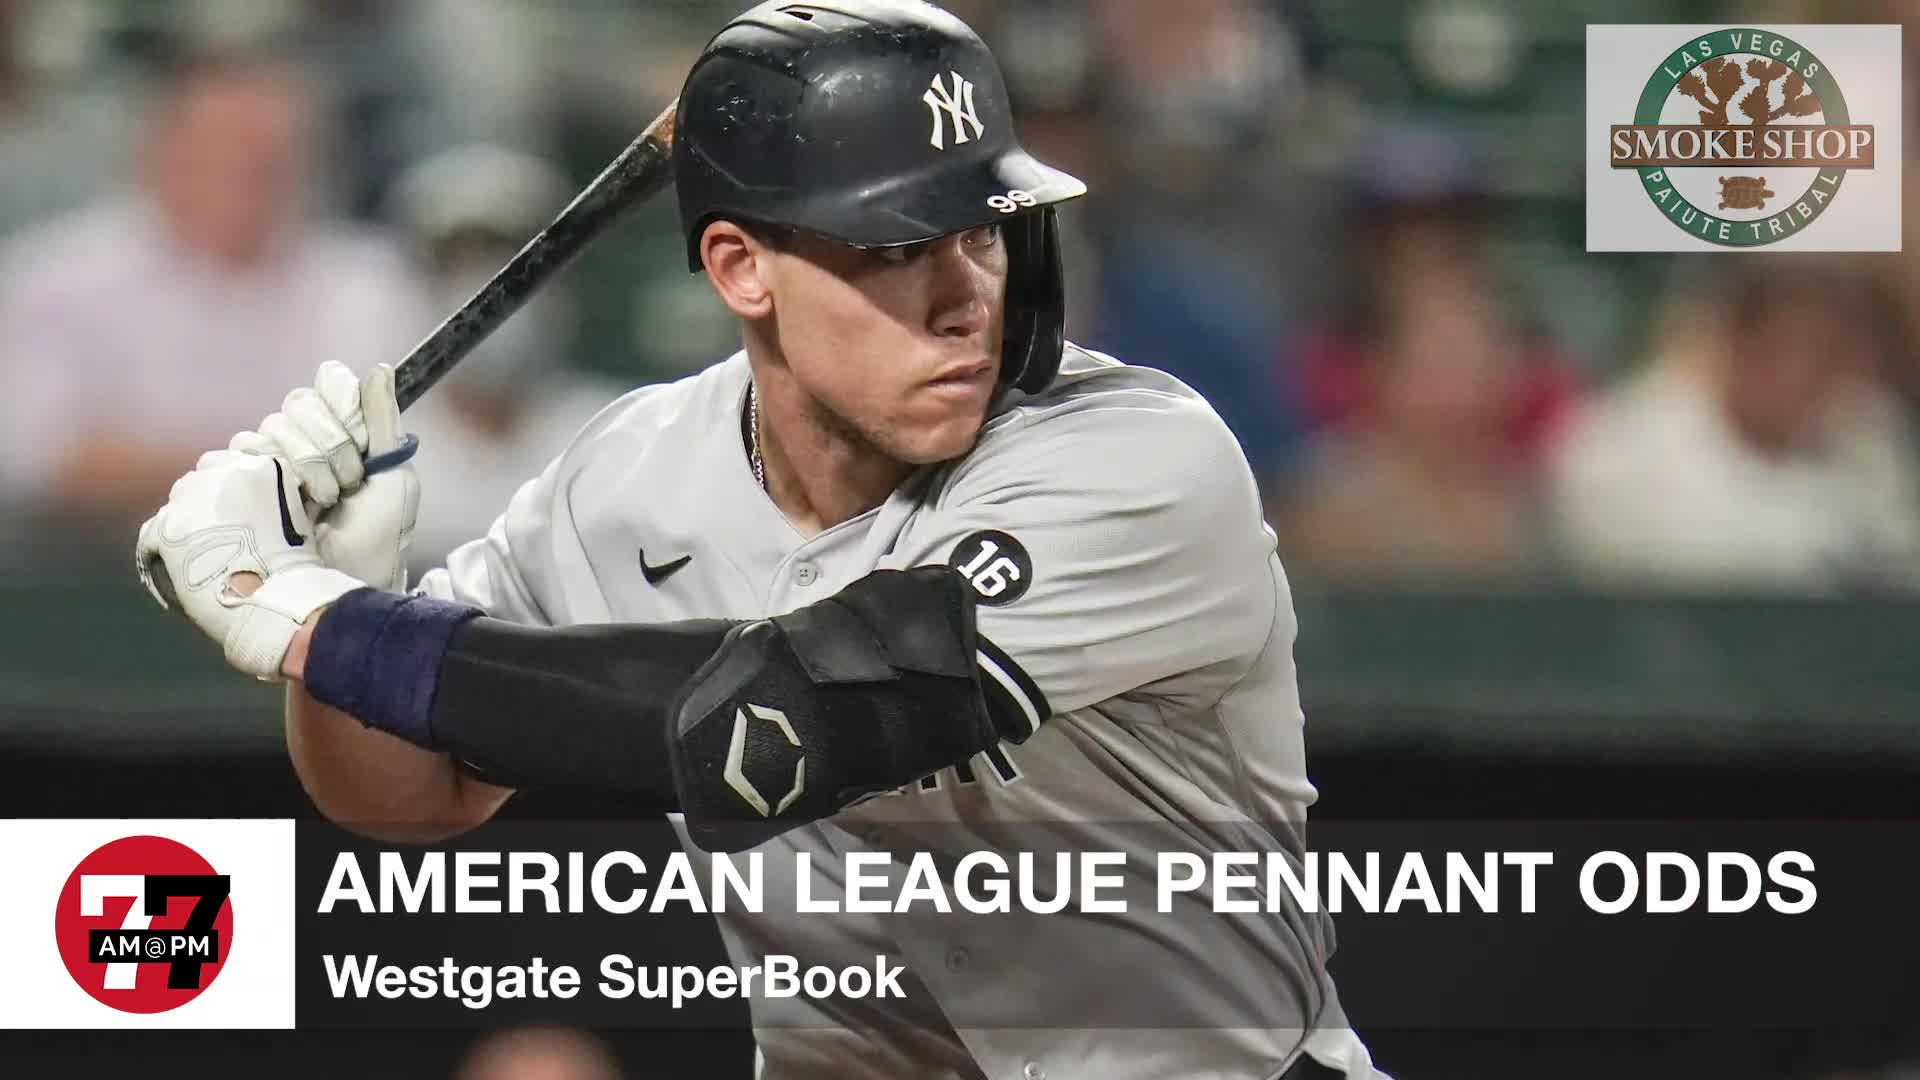 7@7PM American League Pennant Odds